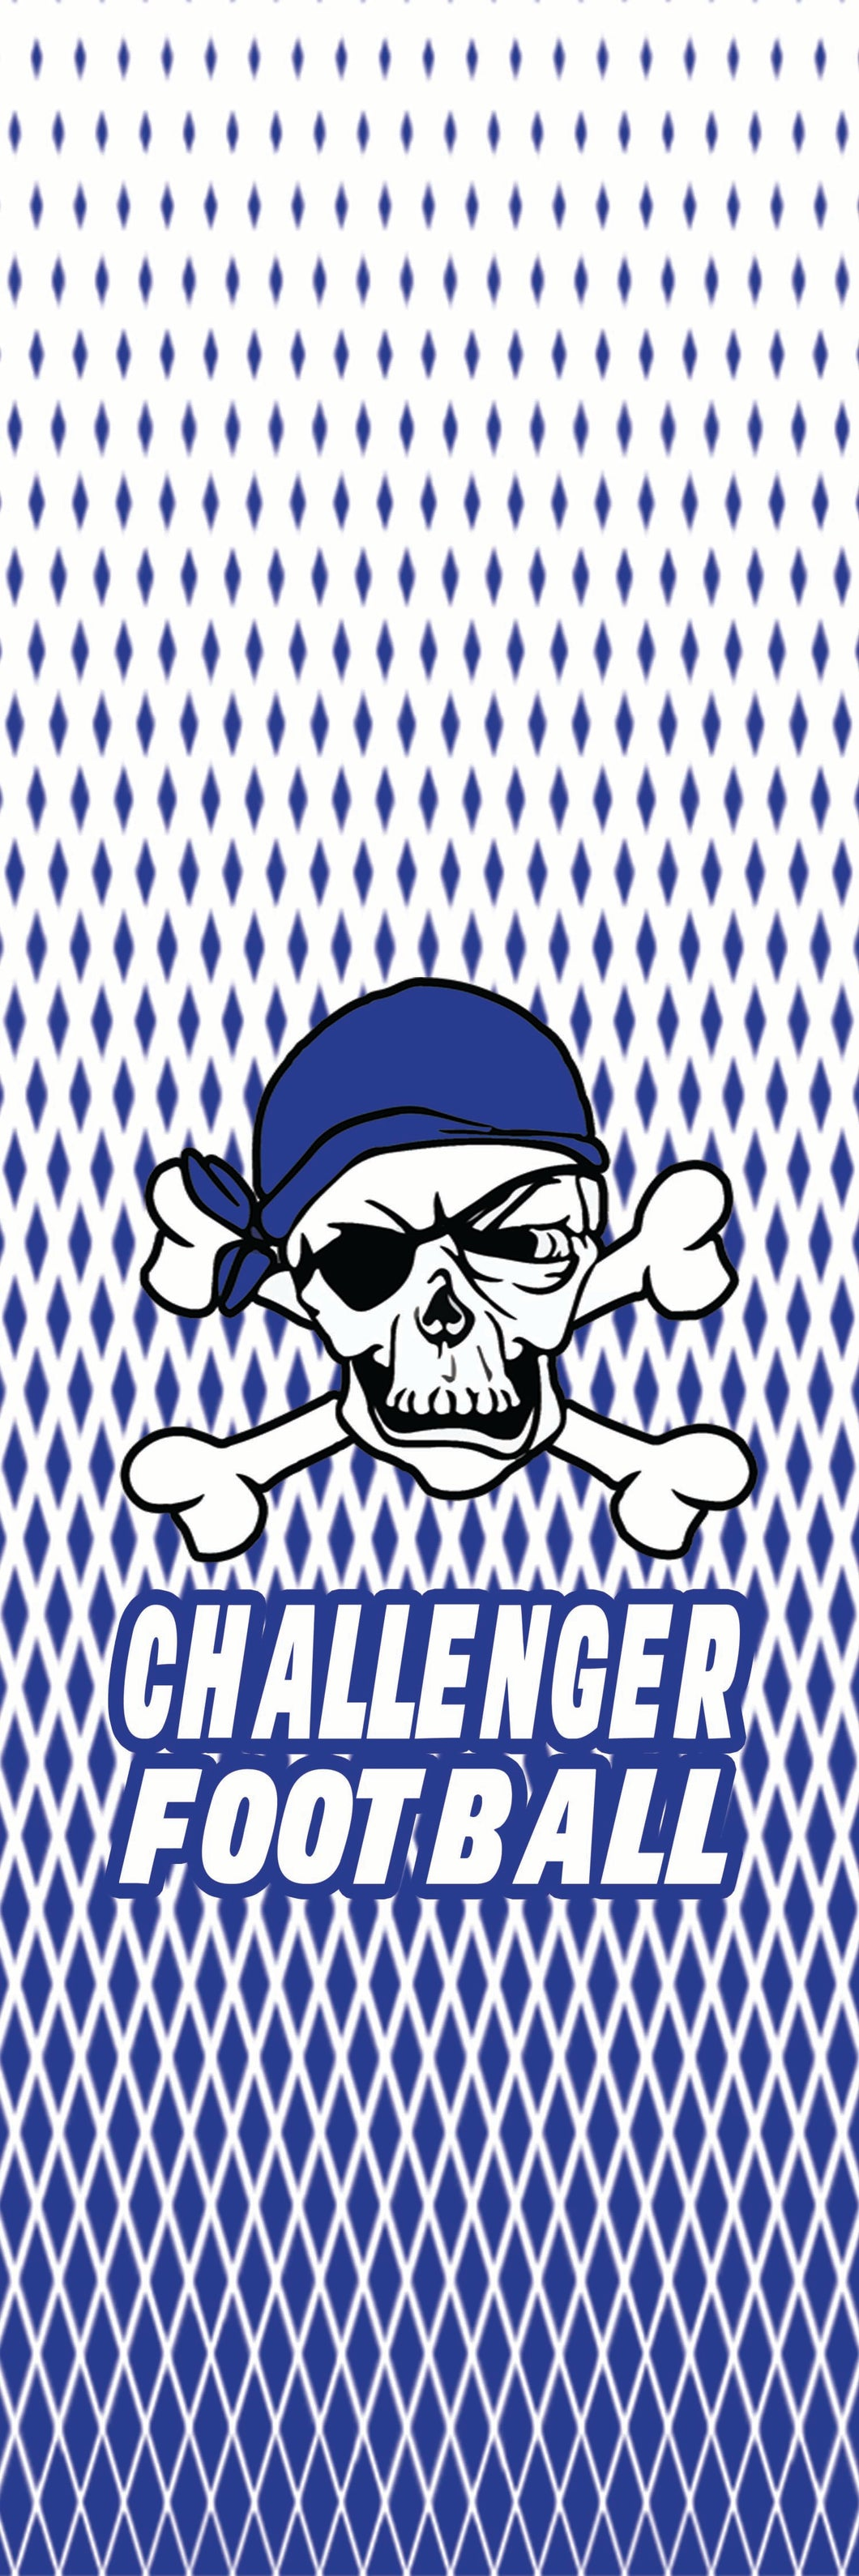 Challengers ArmSleeve